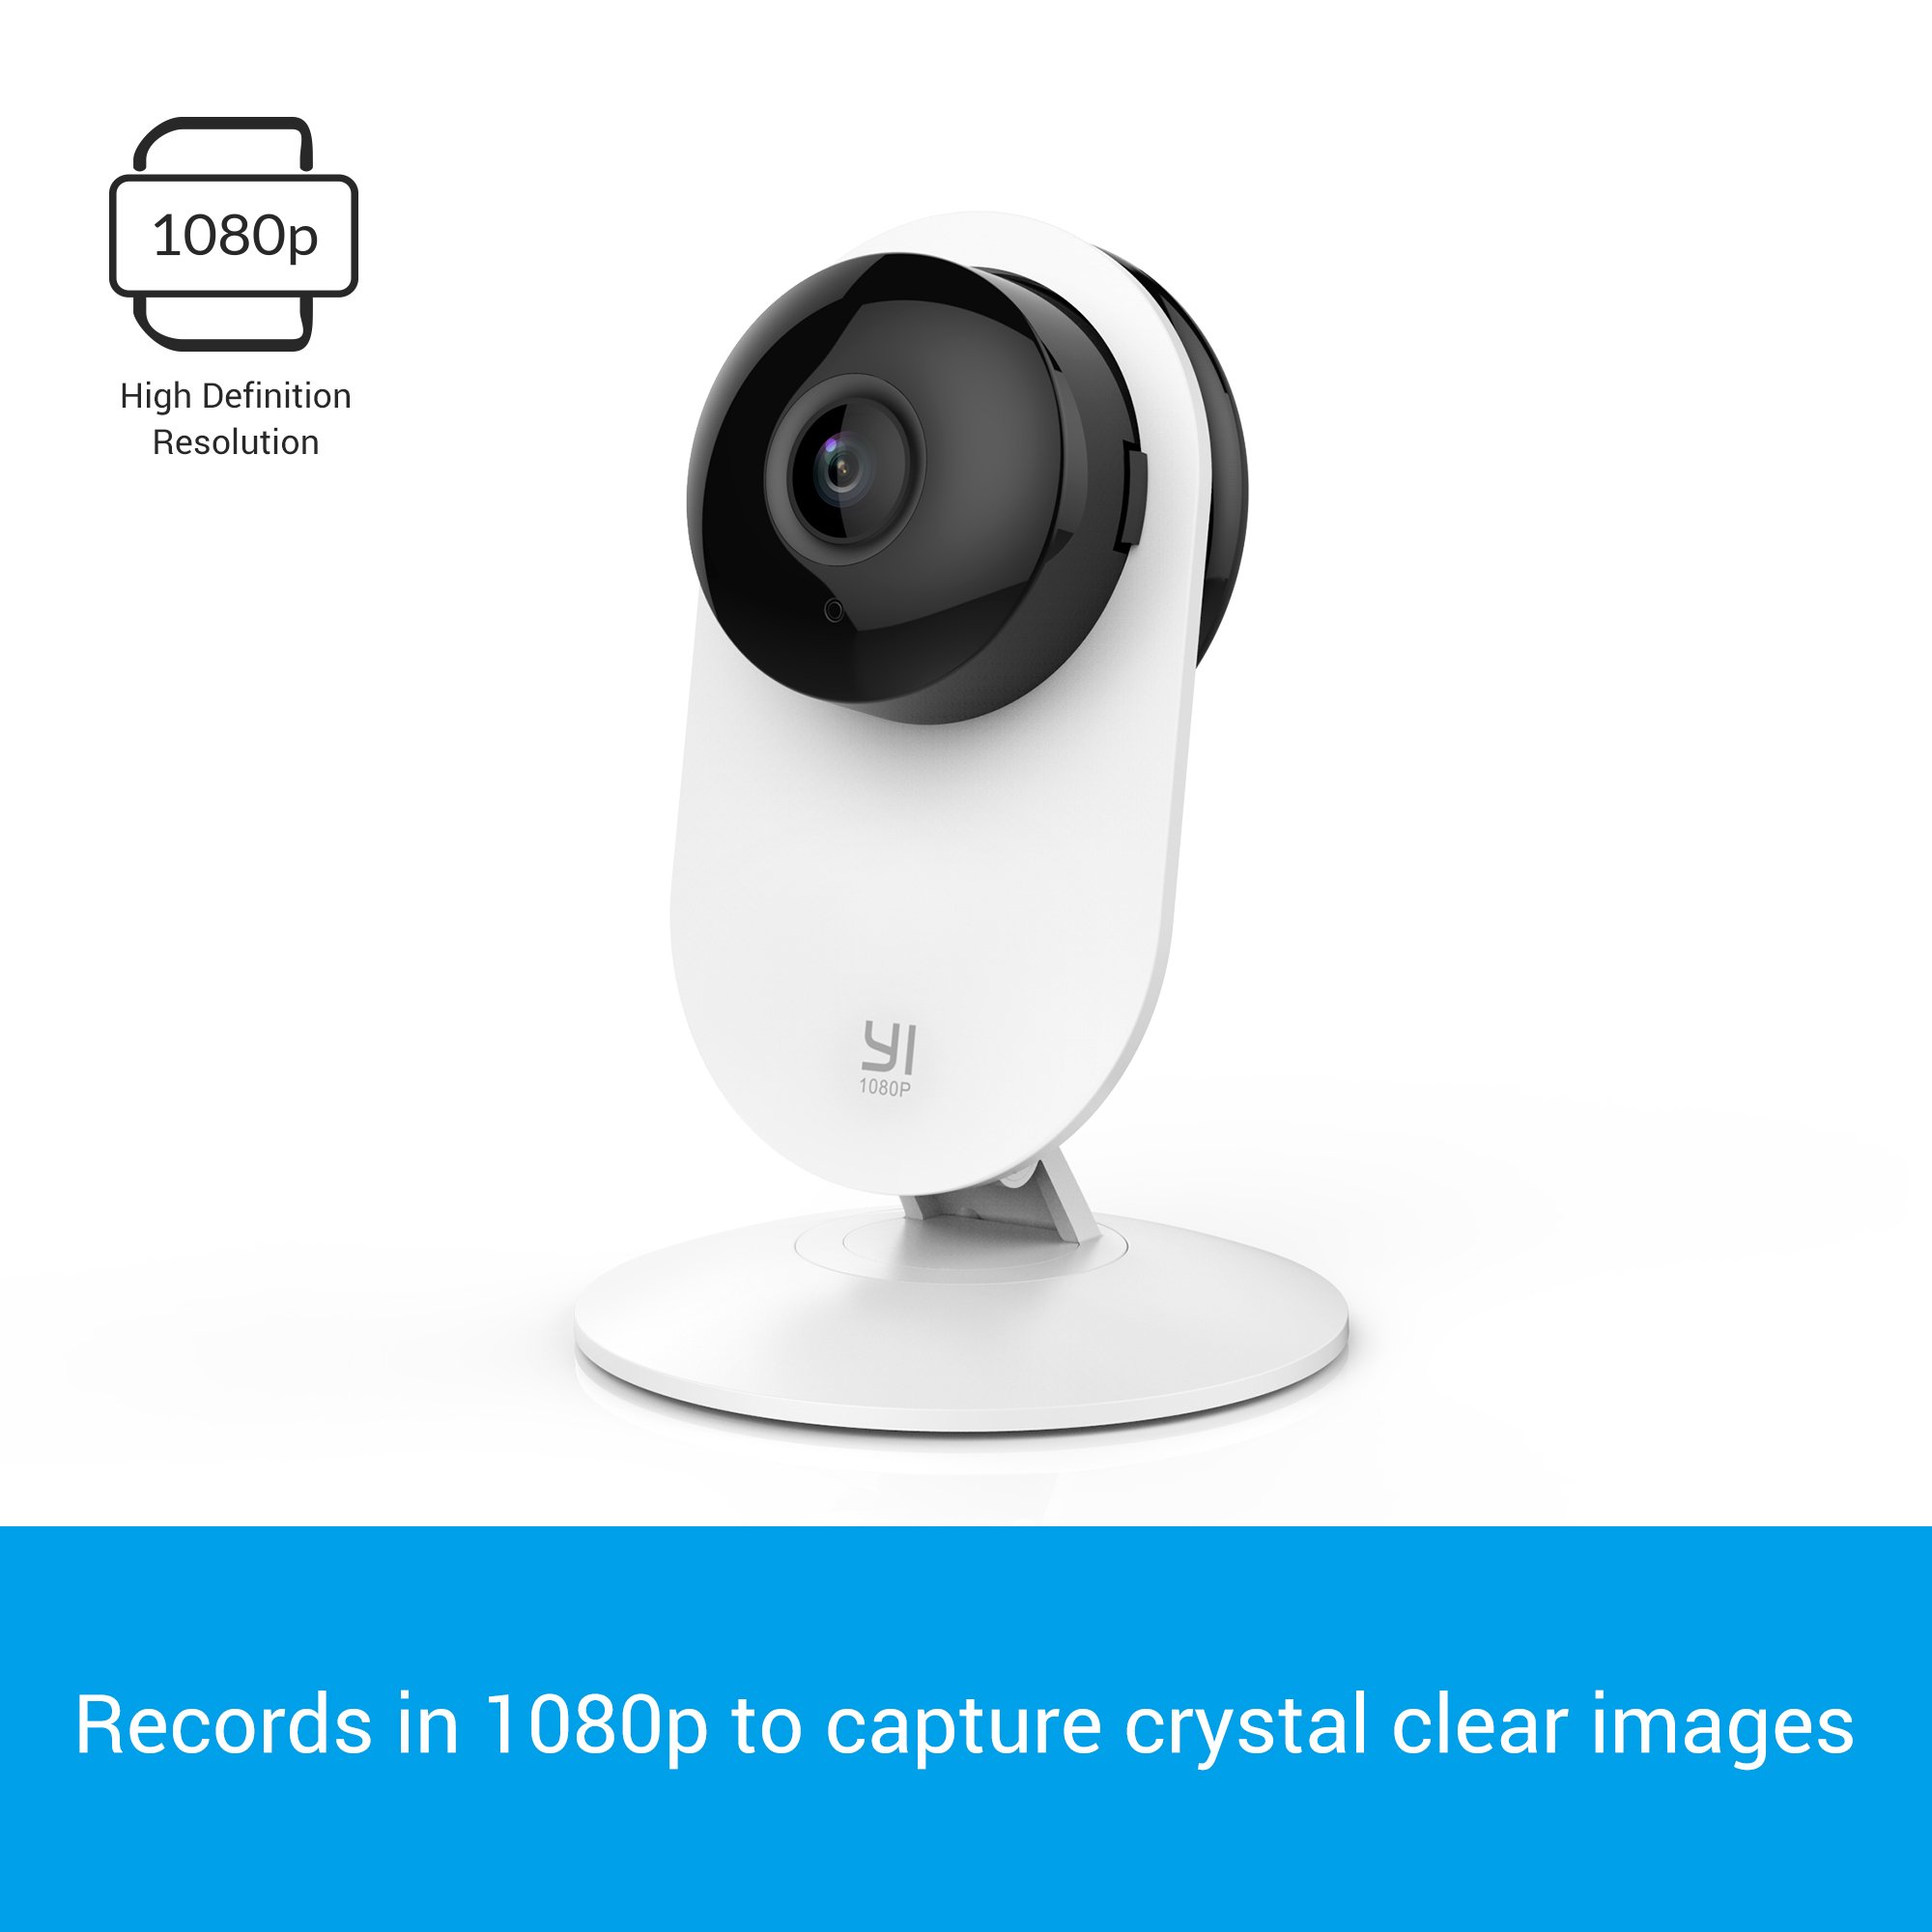 YI 1080p Home Camera, Indoor IP Security Surveillance System with Night Vision for Home/Office/Baby/Nanny/Pet Monitor with iOS, Android App - Cloud Service Available by YI (Image #2)